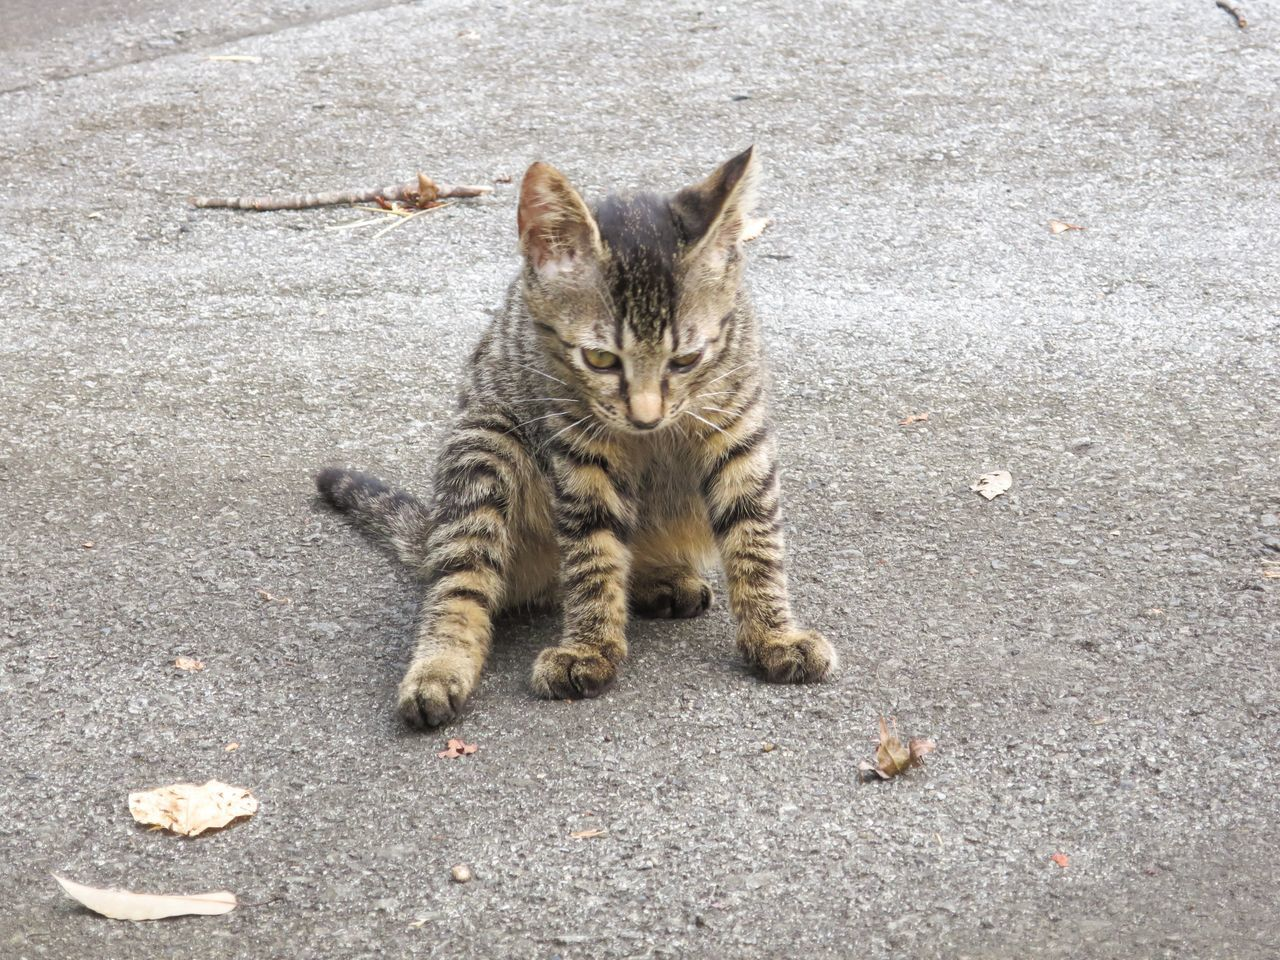 High Angle View Of Tabby Sitting On Street